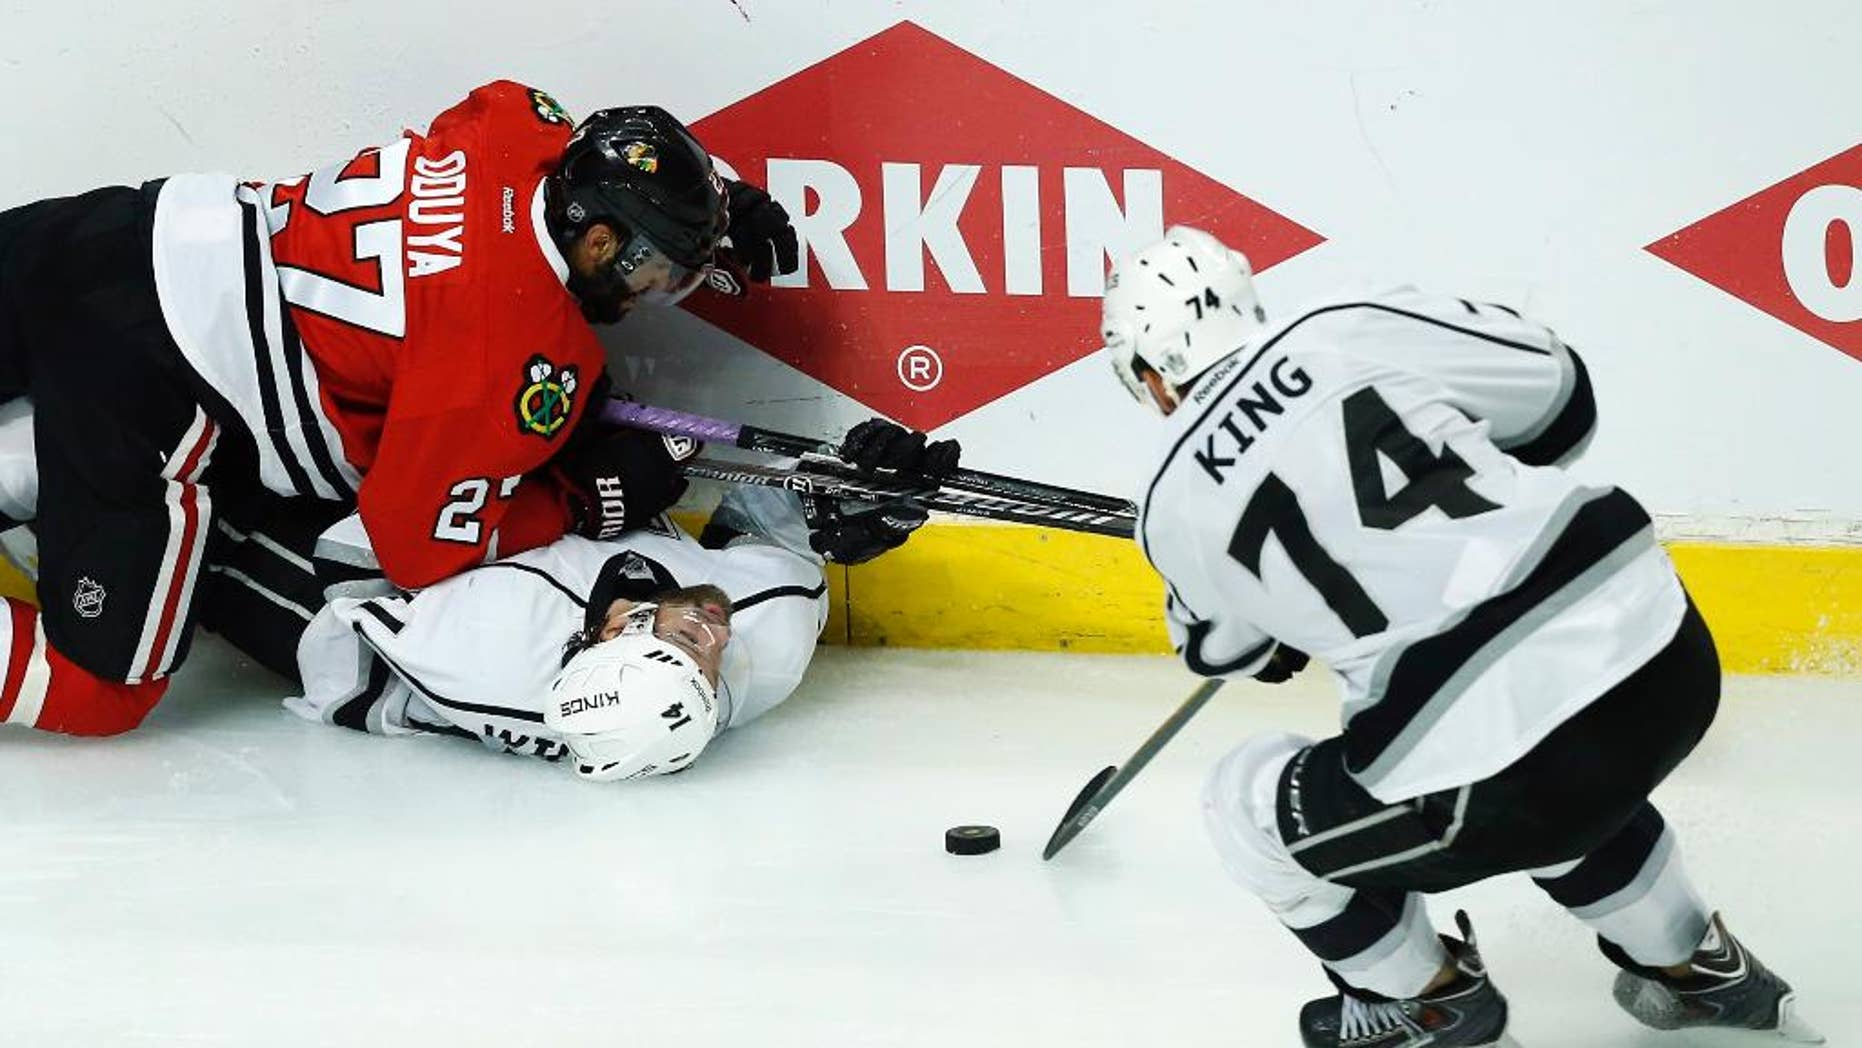 Los Angeles Kings left wing Dwight King (74) takes the puck as Chicago Blackhawks defenseman Johnny Oduya (27) and the Kings right wing Justin Williams (14) battle during the overtime period in Game 5 of the Western Conference finals in the NHL hockey Stanley Cup playoffs Wednesday, May 28, 2014, in Chicago. (AP Photo/Andrew A. Nelles)